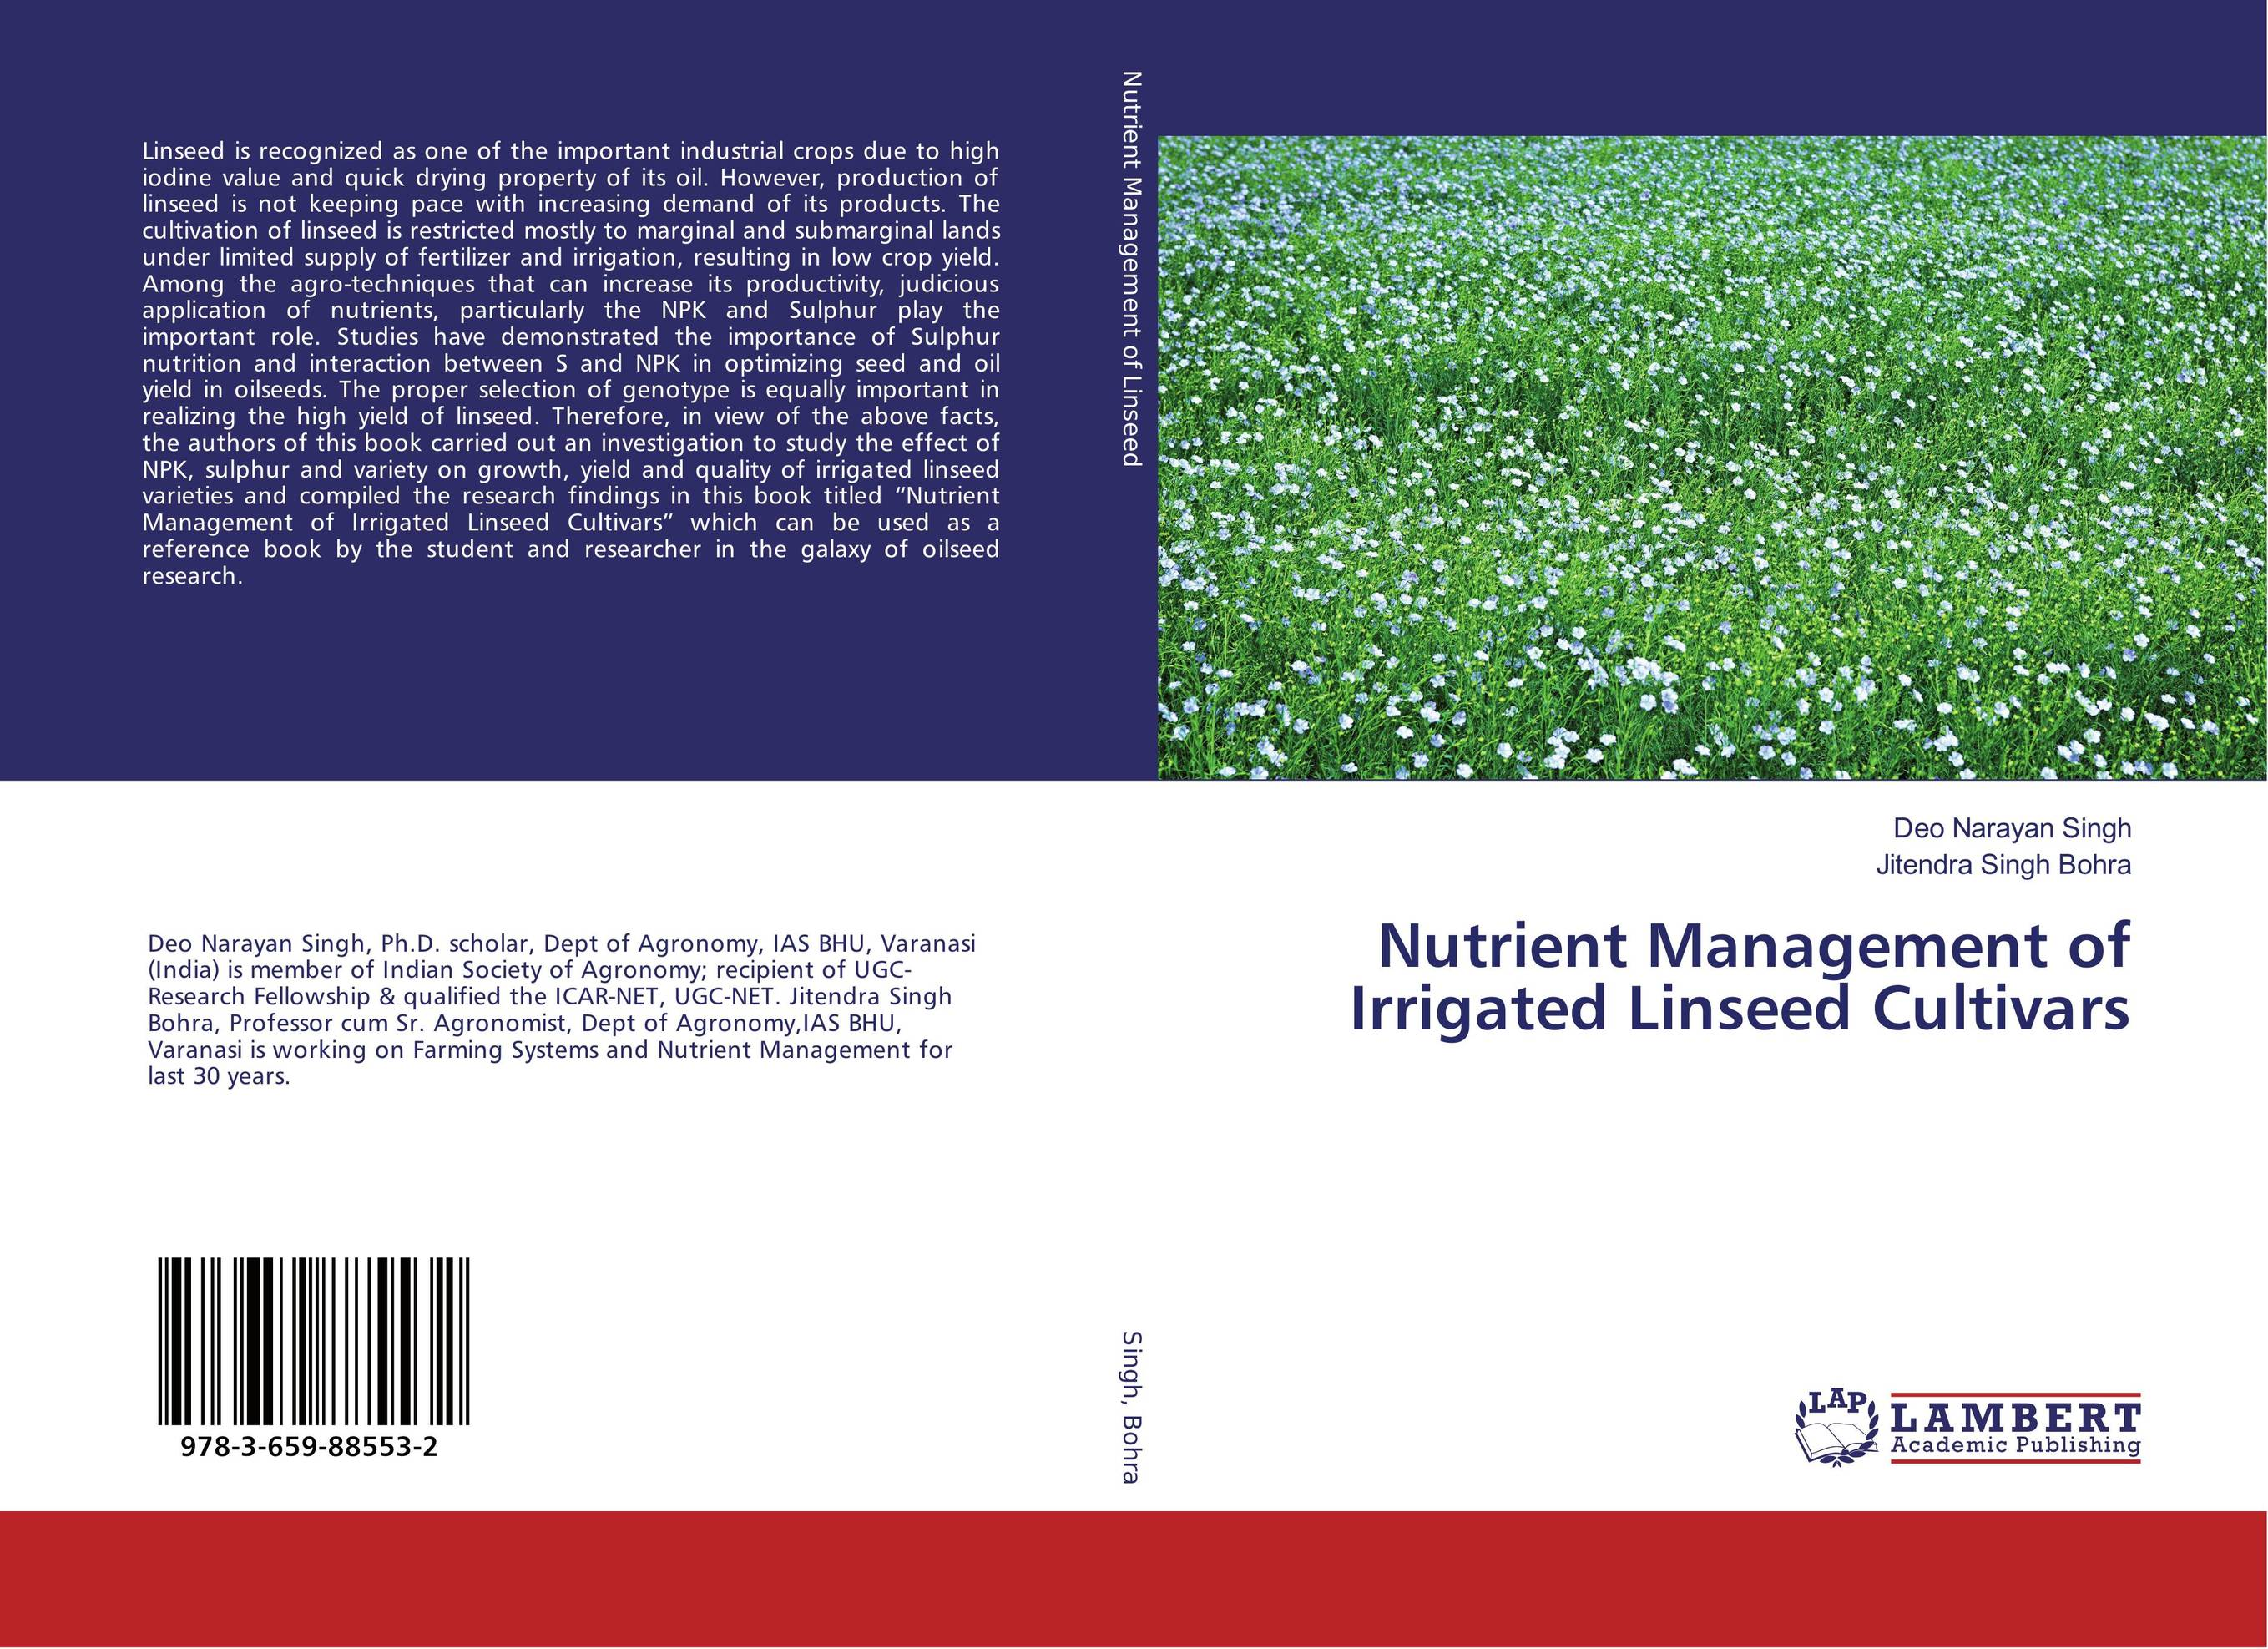 Nutrient Management of Irrigated Linseed Cultivars oil separator integrates well the different techniques of oil separation in the design of its products